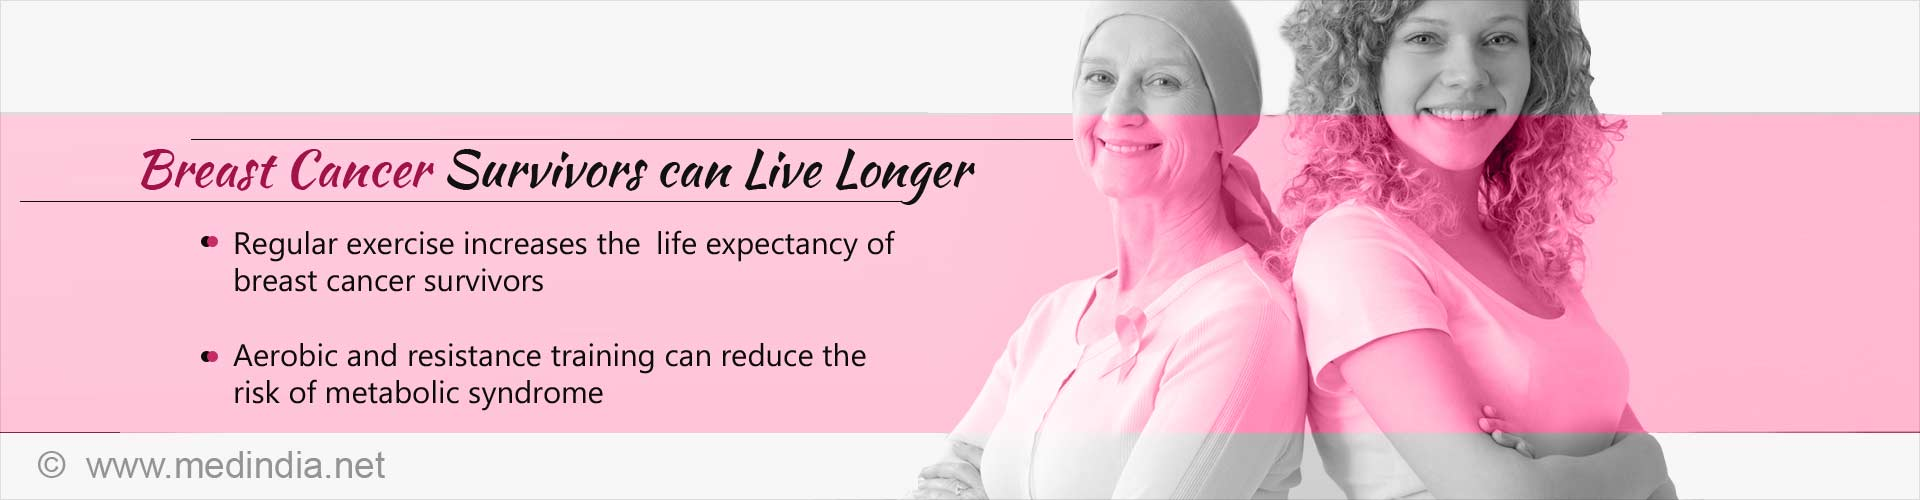 Lifespan of Breast Cancer Survivors can be Increased